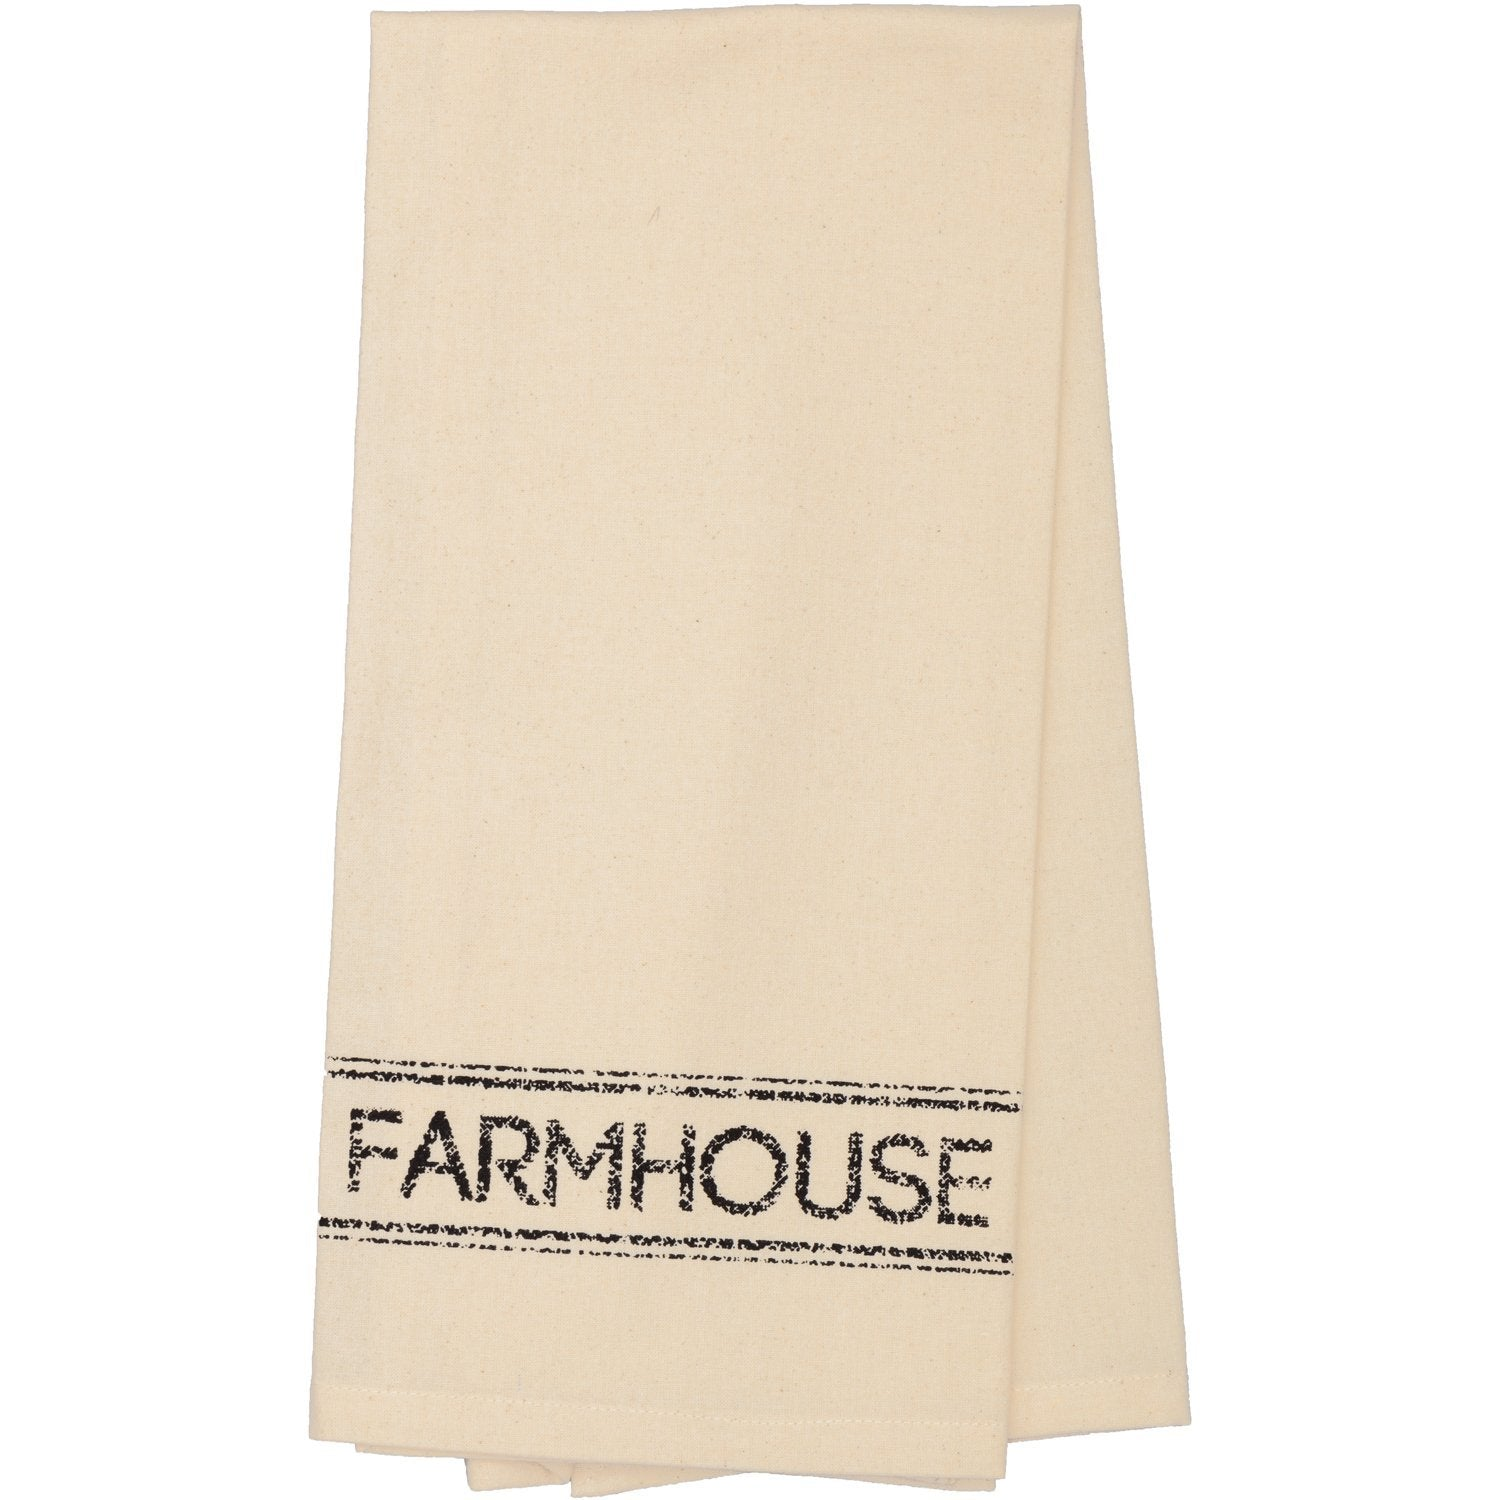 Sawyer Mill Charcoal Farmhouse Muslin Unbleached Natural Tea Towel.